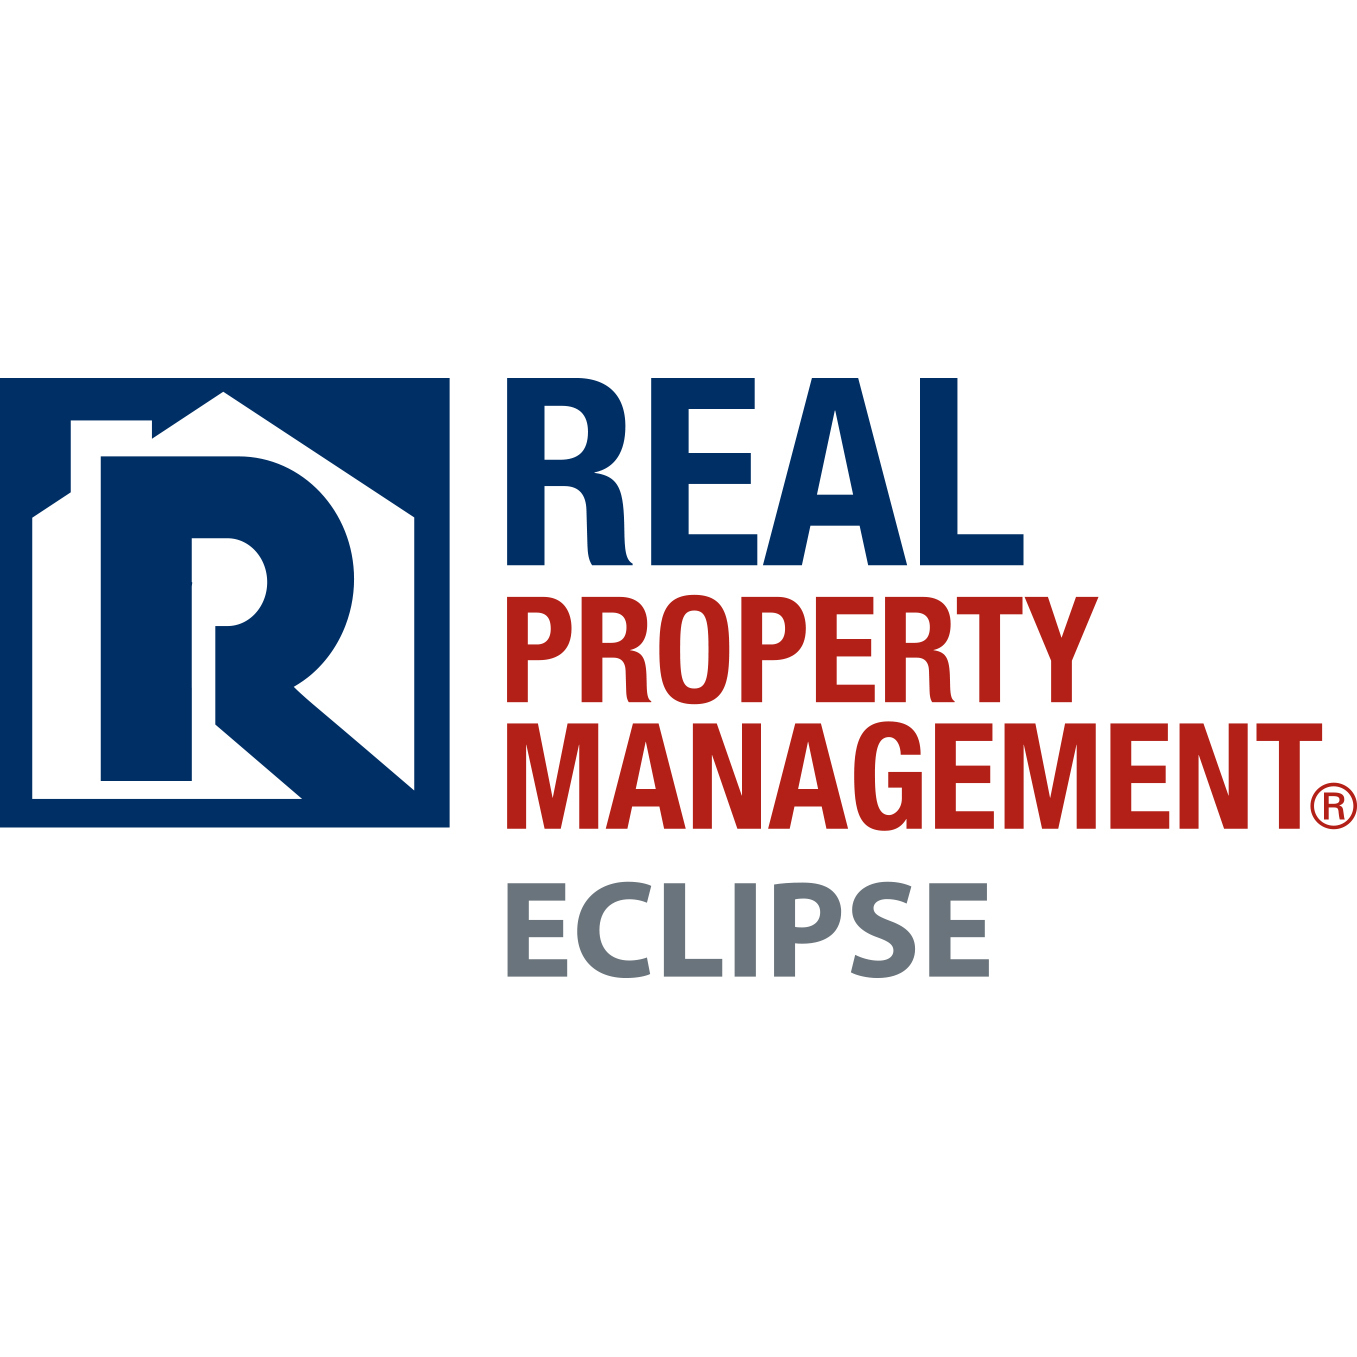 Real Property Management Eclipse